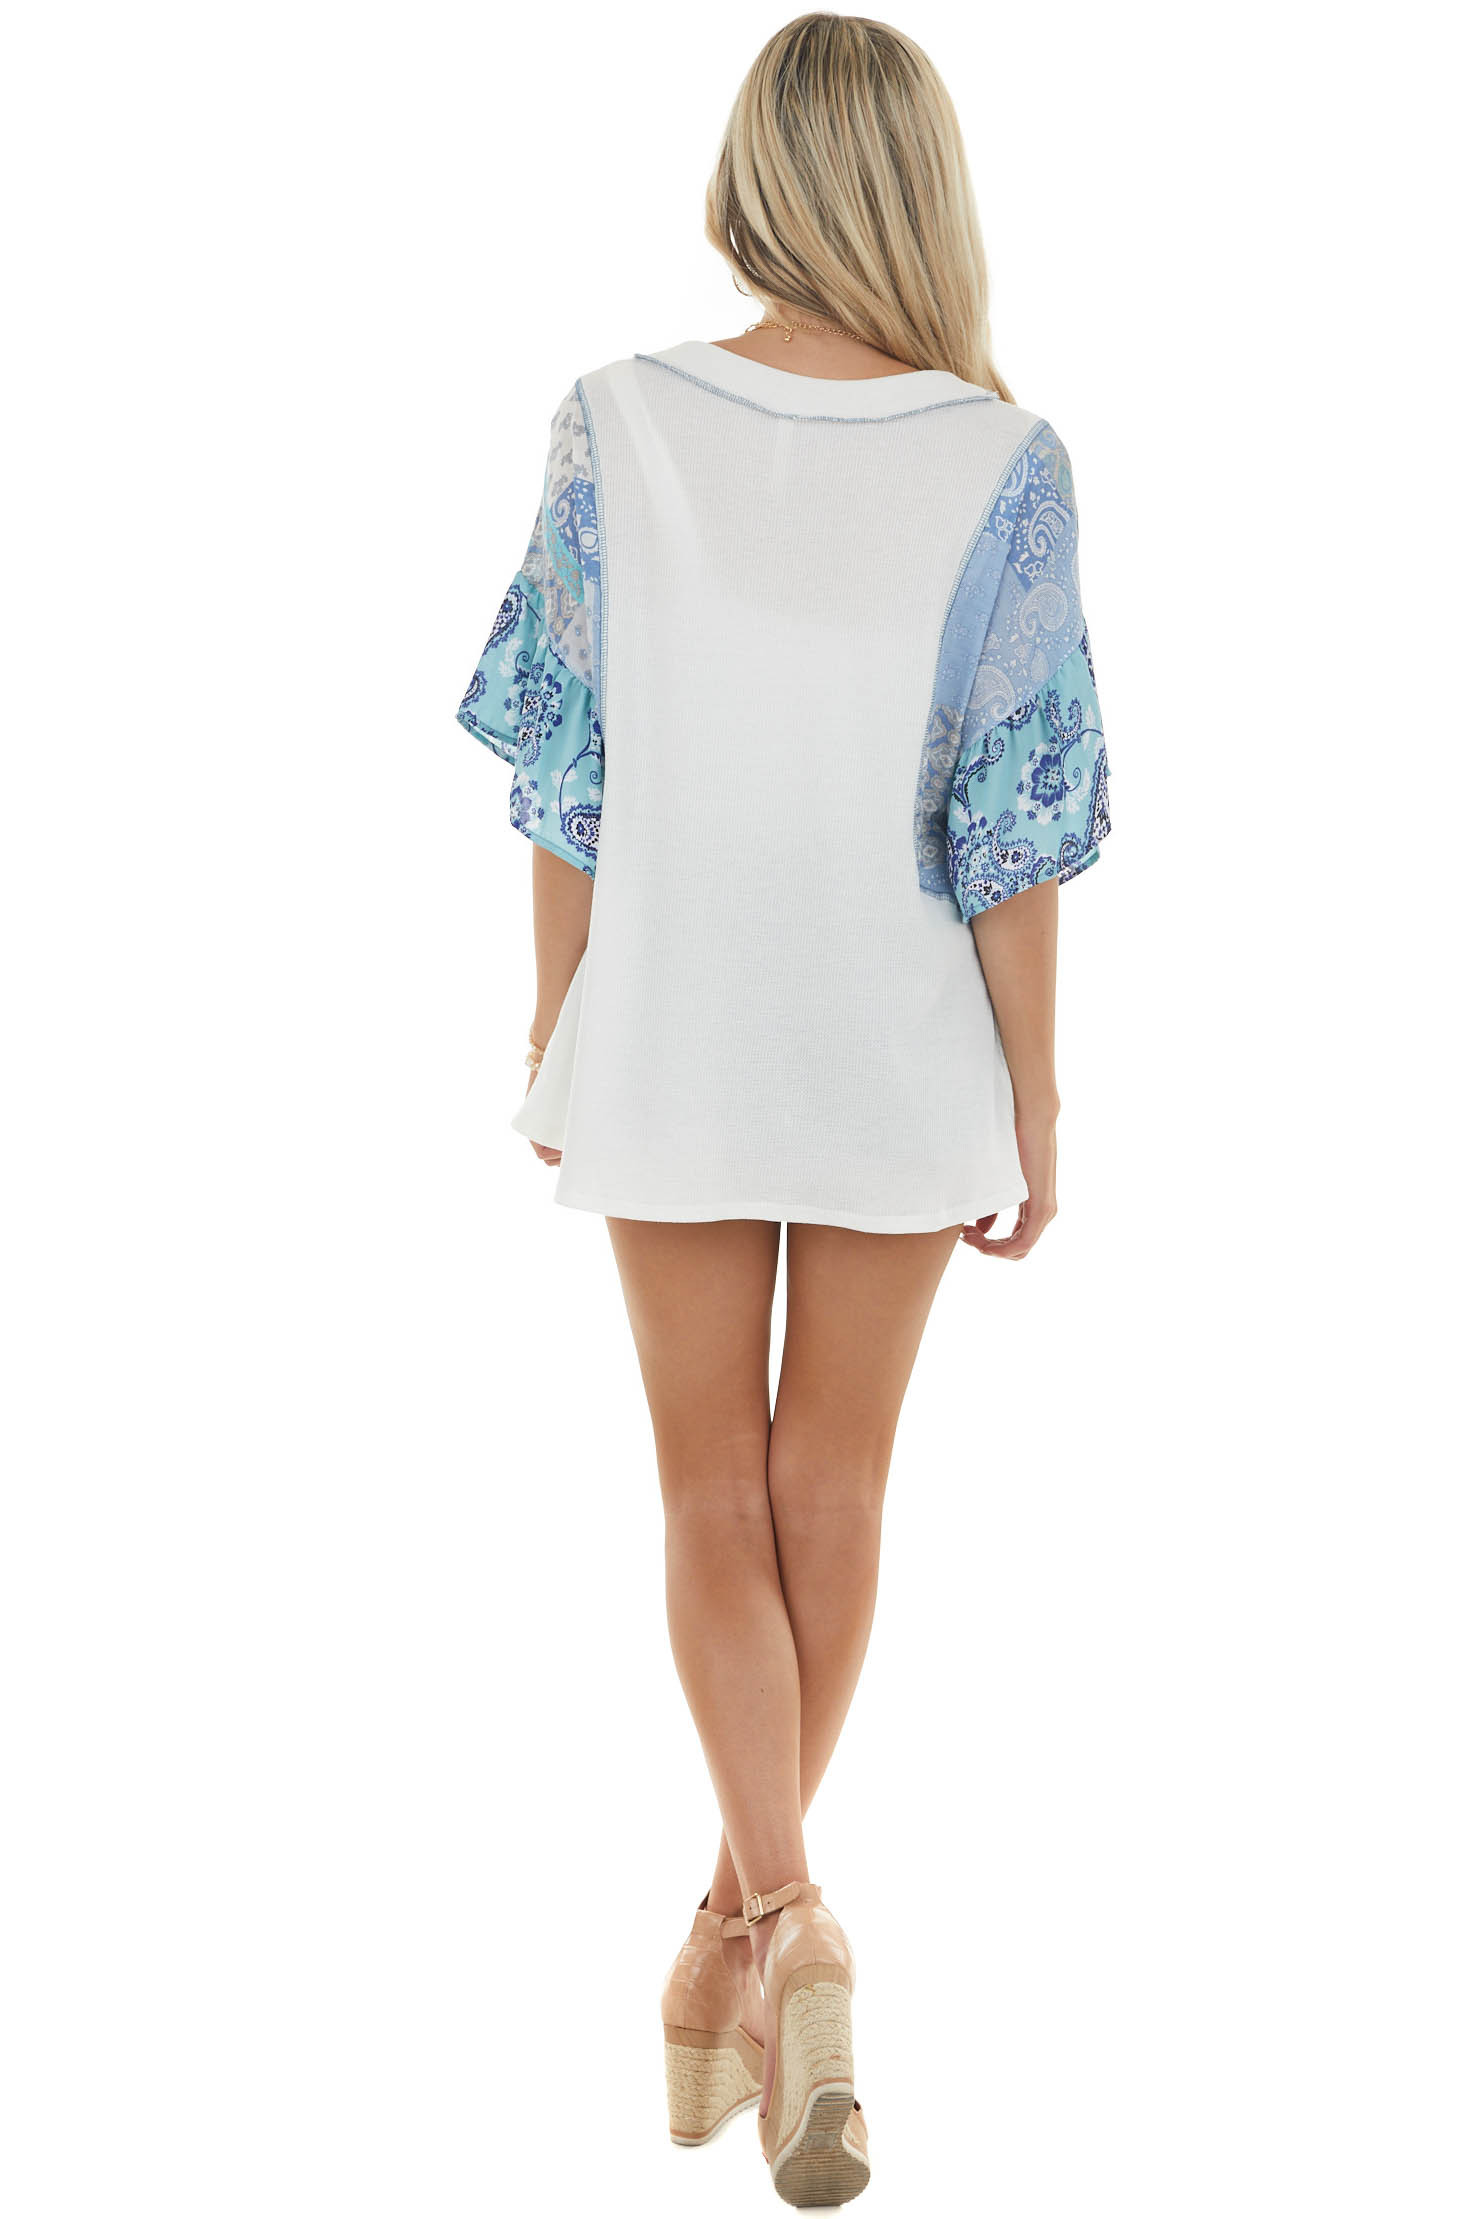 Off White Raglan Top with Multiprint Sleeves